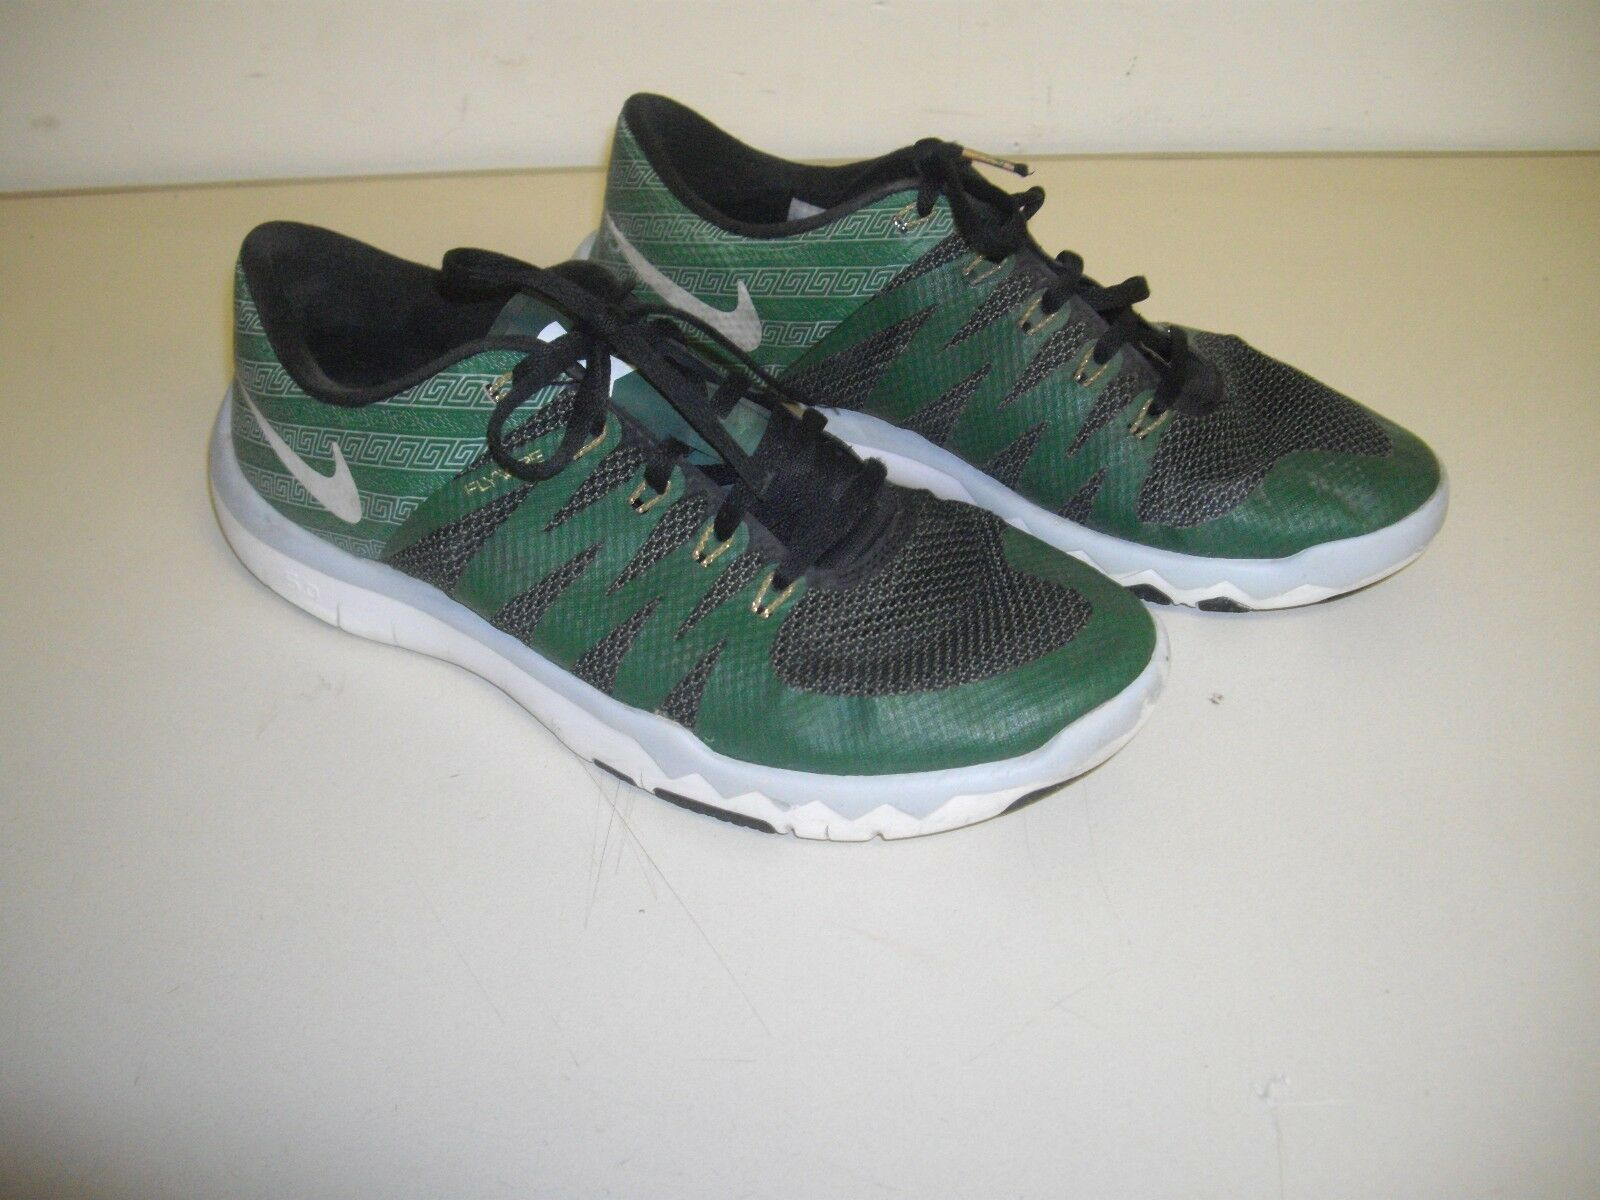 Mens, NIKE, Free Trainer, 5.0, Size Flywire, Michigan State Shoes, Size 5.0, 9.5M 72ee31